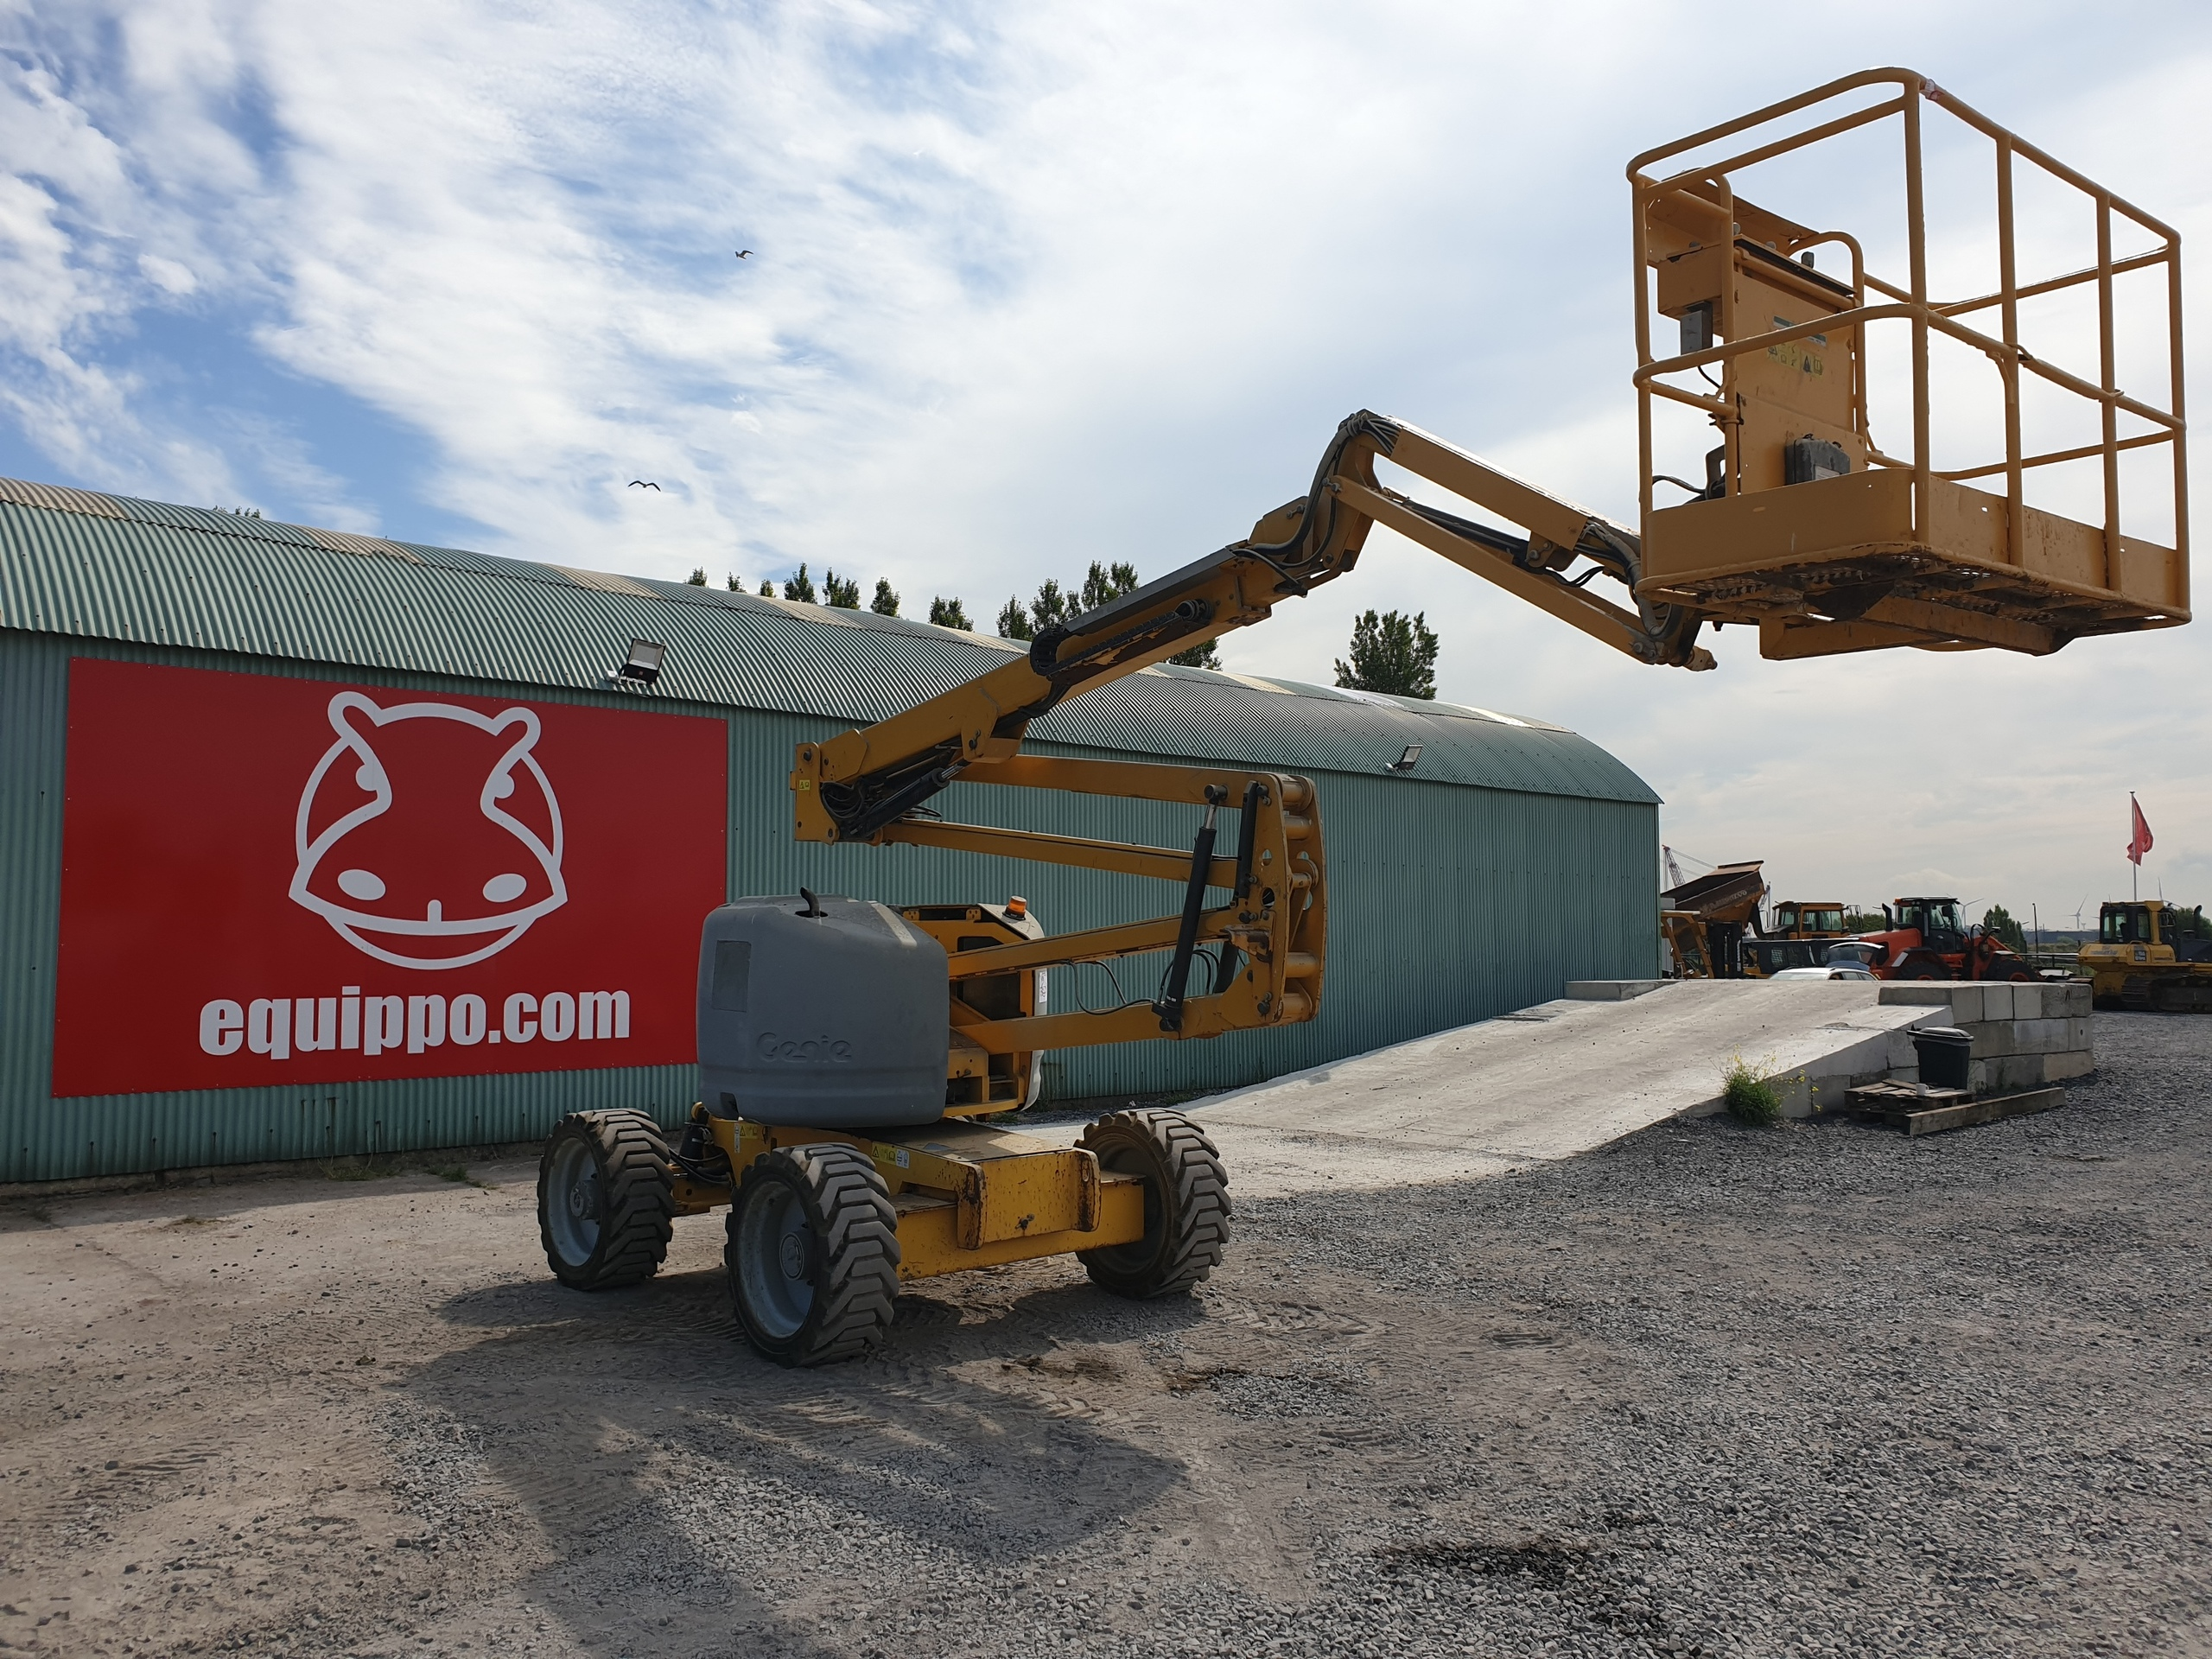 Used Articulated Boomlift at Equippo Auction's yard.jpg